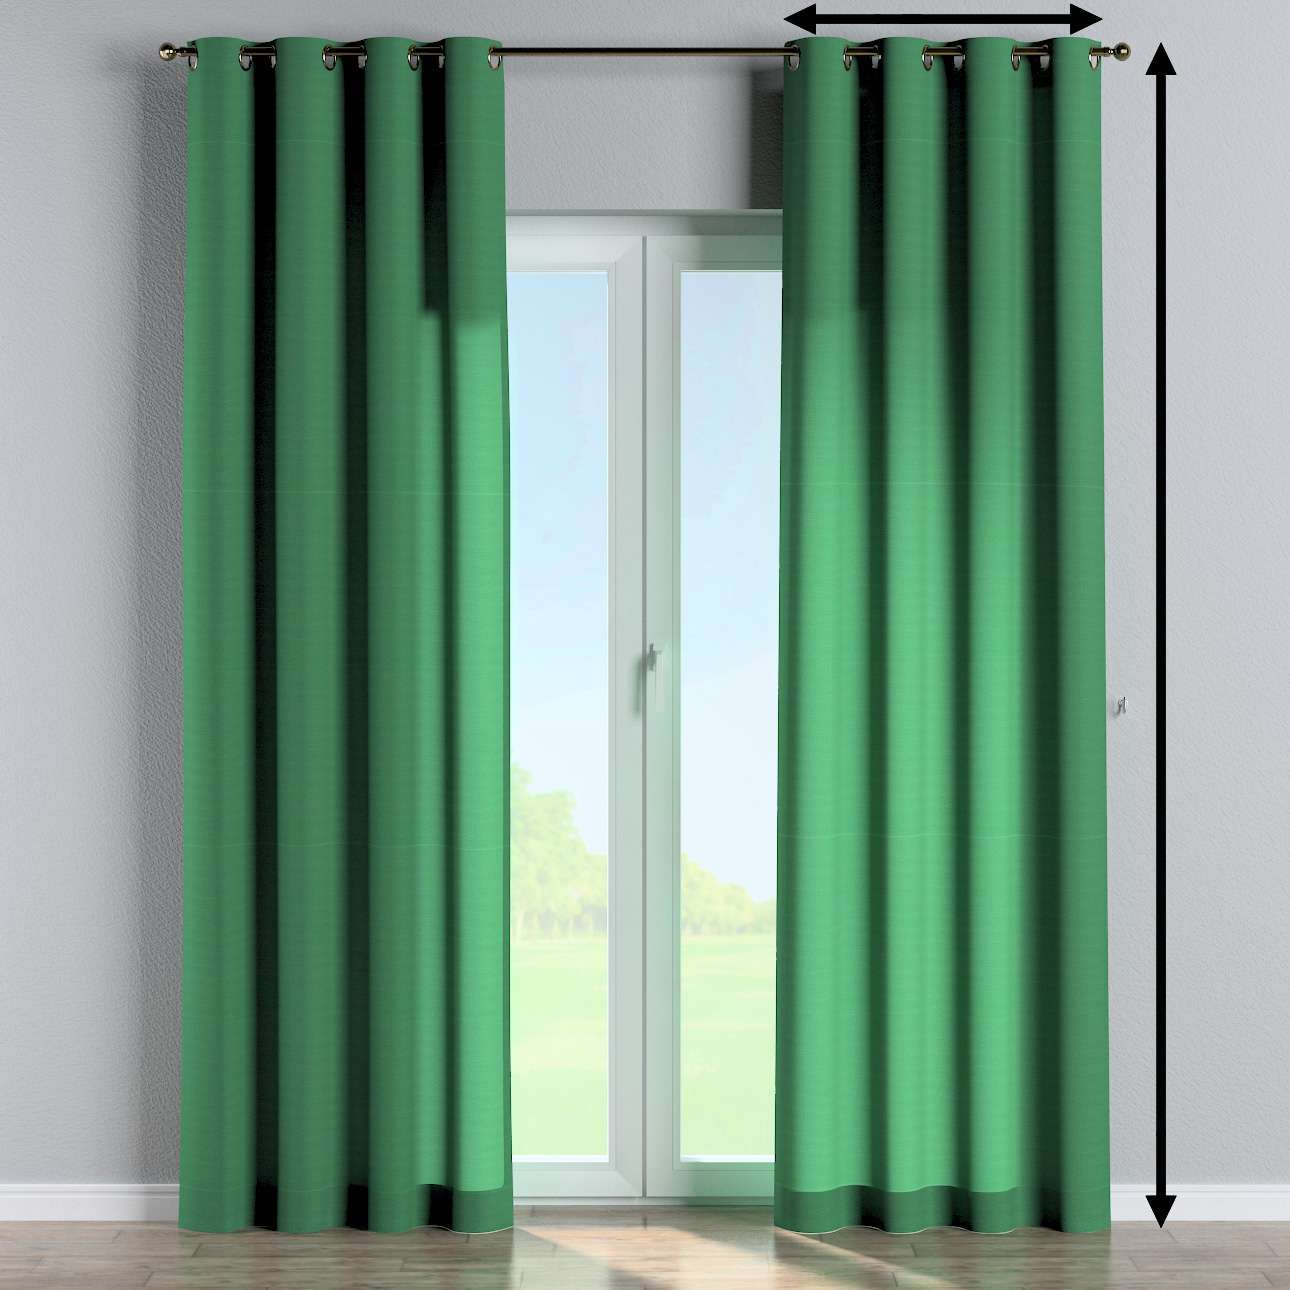 Eyelet curtains in collection Loneta , fabric: 133-18